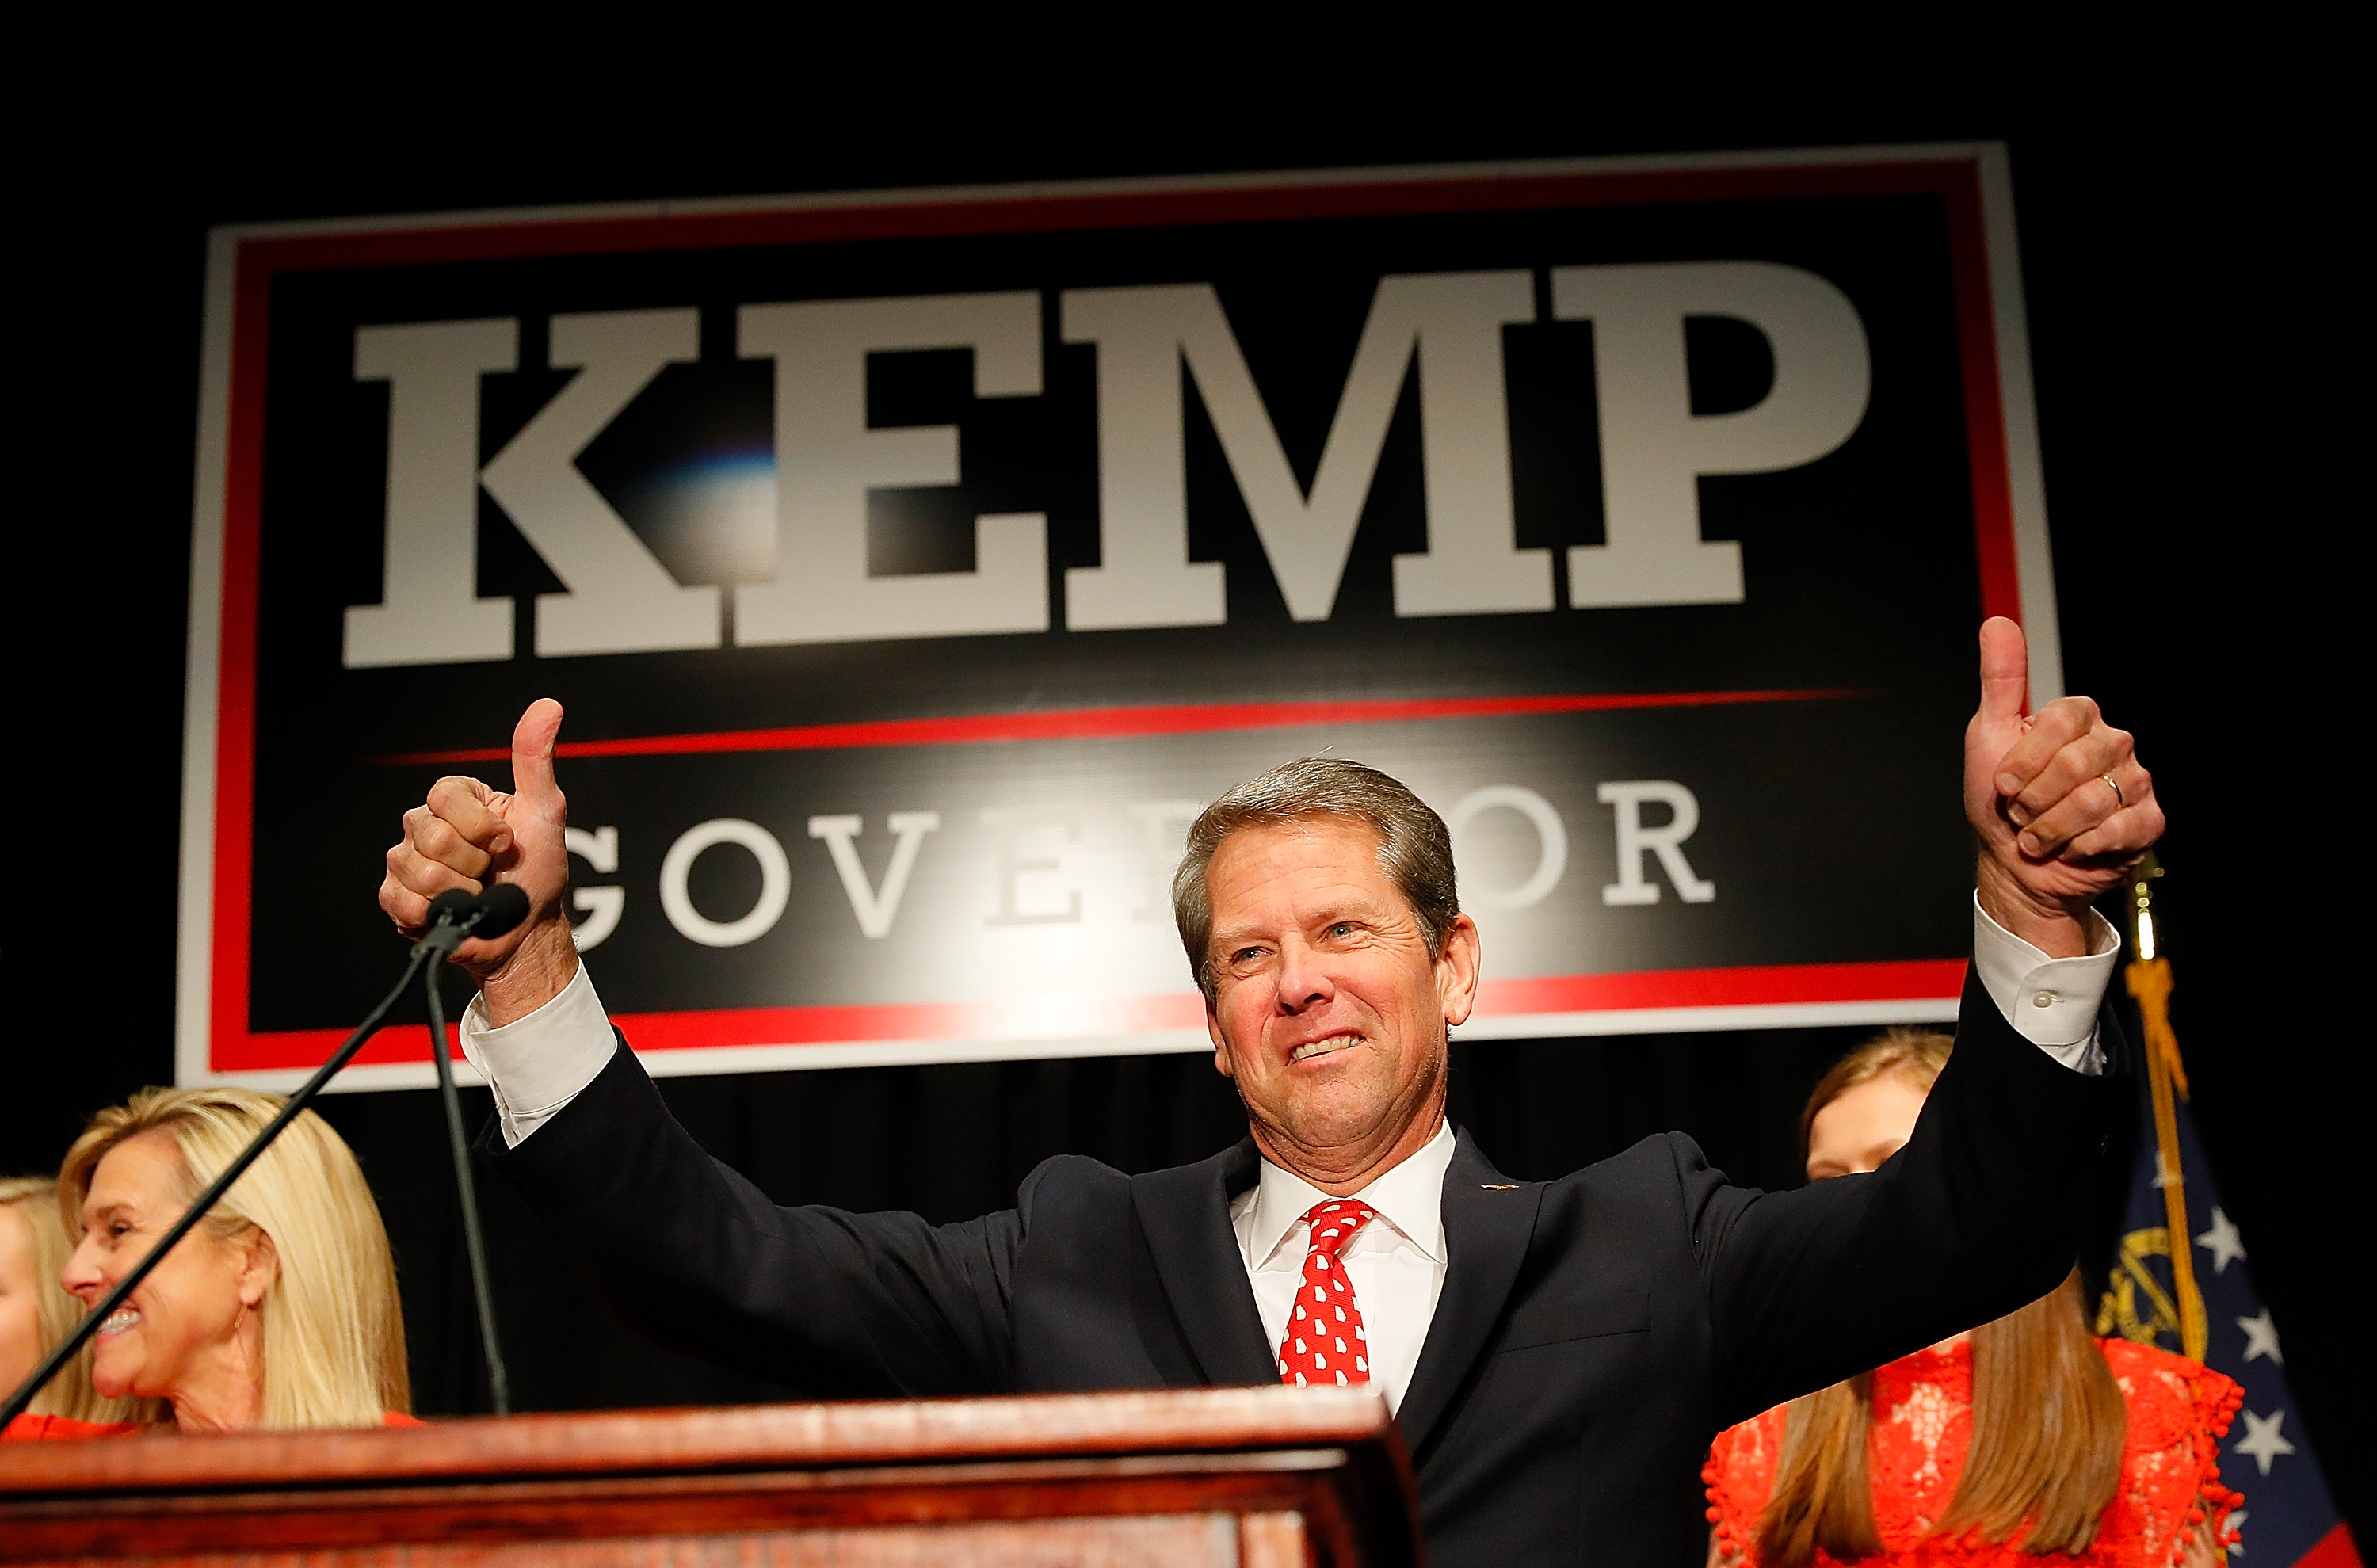 Republican gubernatorial candidate Brian Kemp attends the Election Night event at the Classic Center on November 6, 2018 in Athens, Georgia. Kevin C. Cox/Getty Images